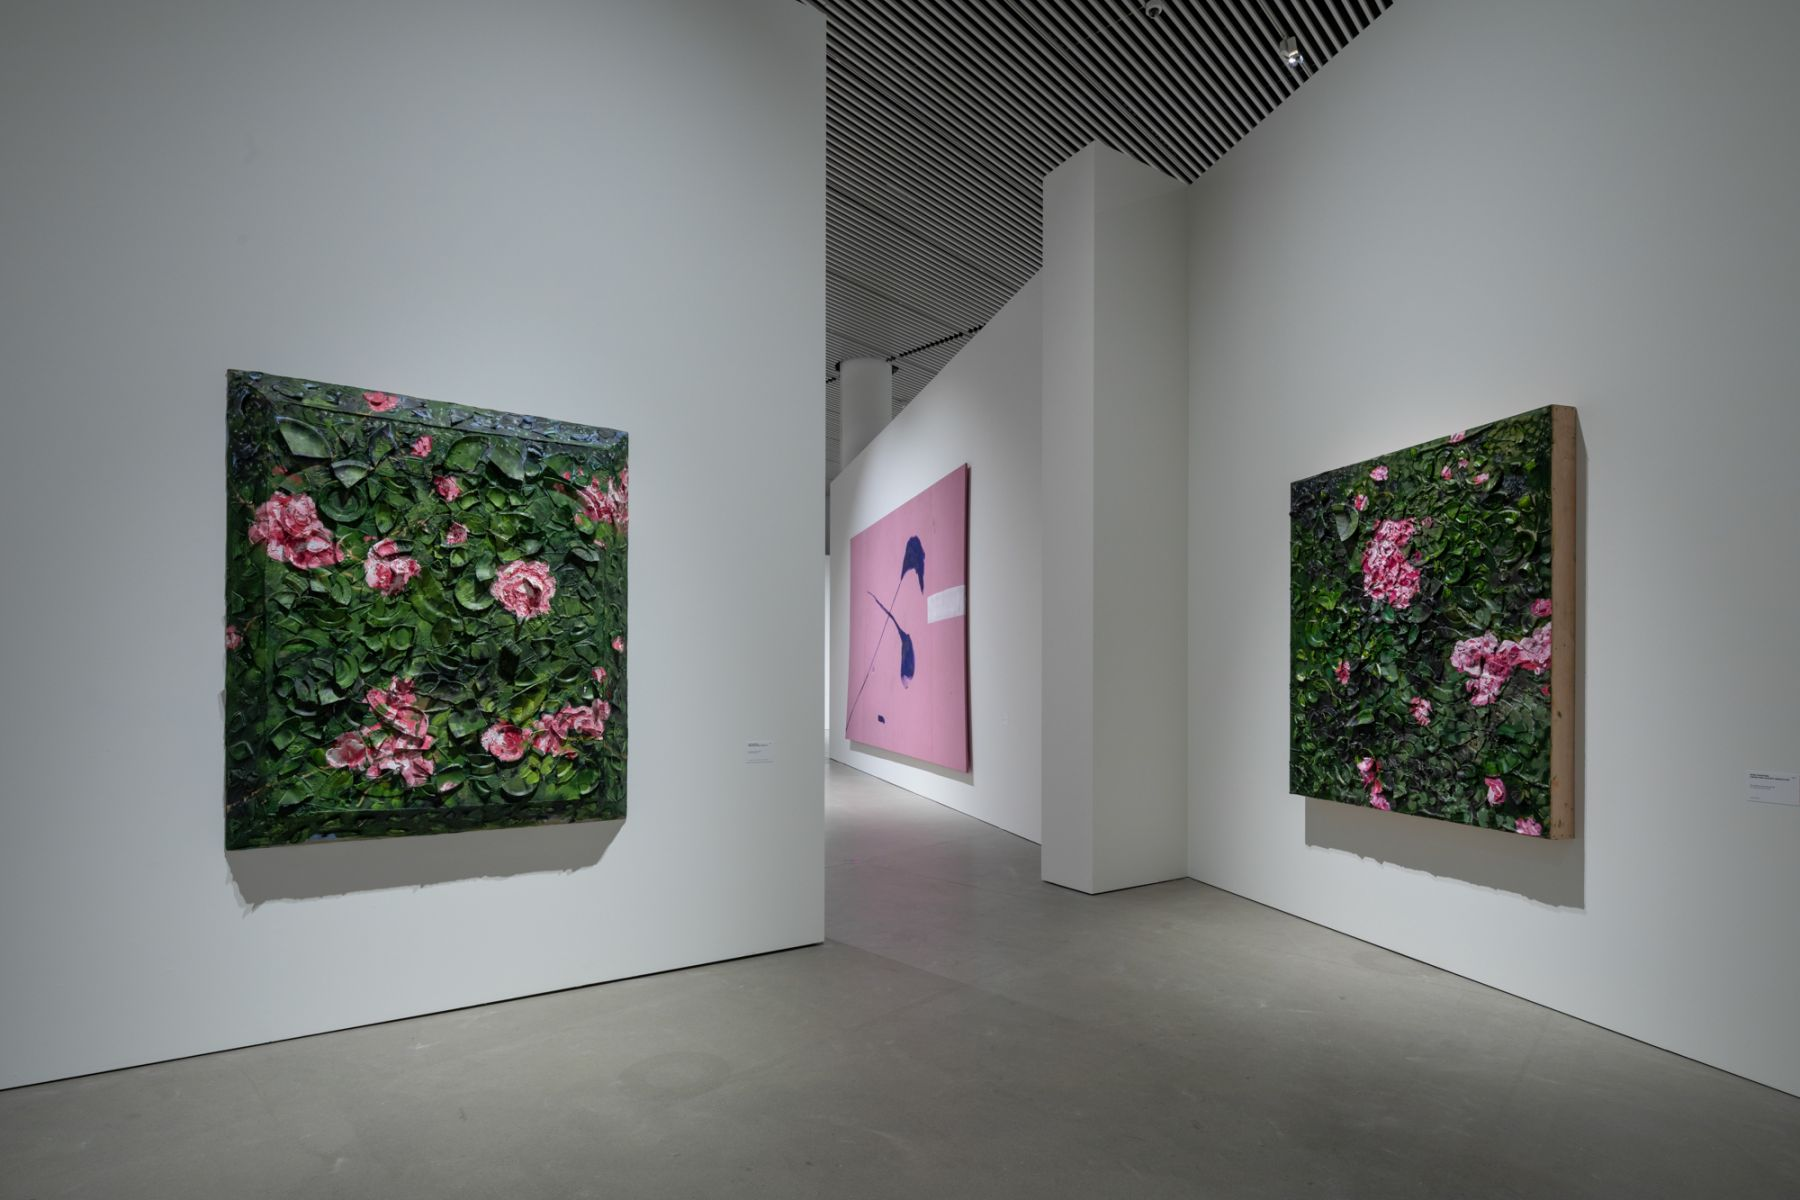 Installation view, Julian Schnabel: Aktion Paintings 1985-2017